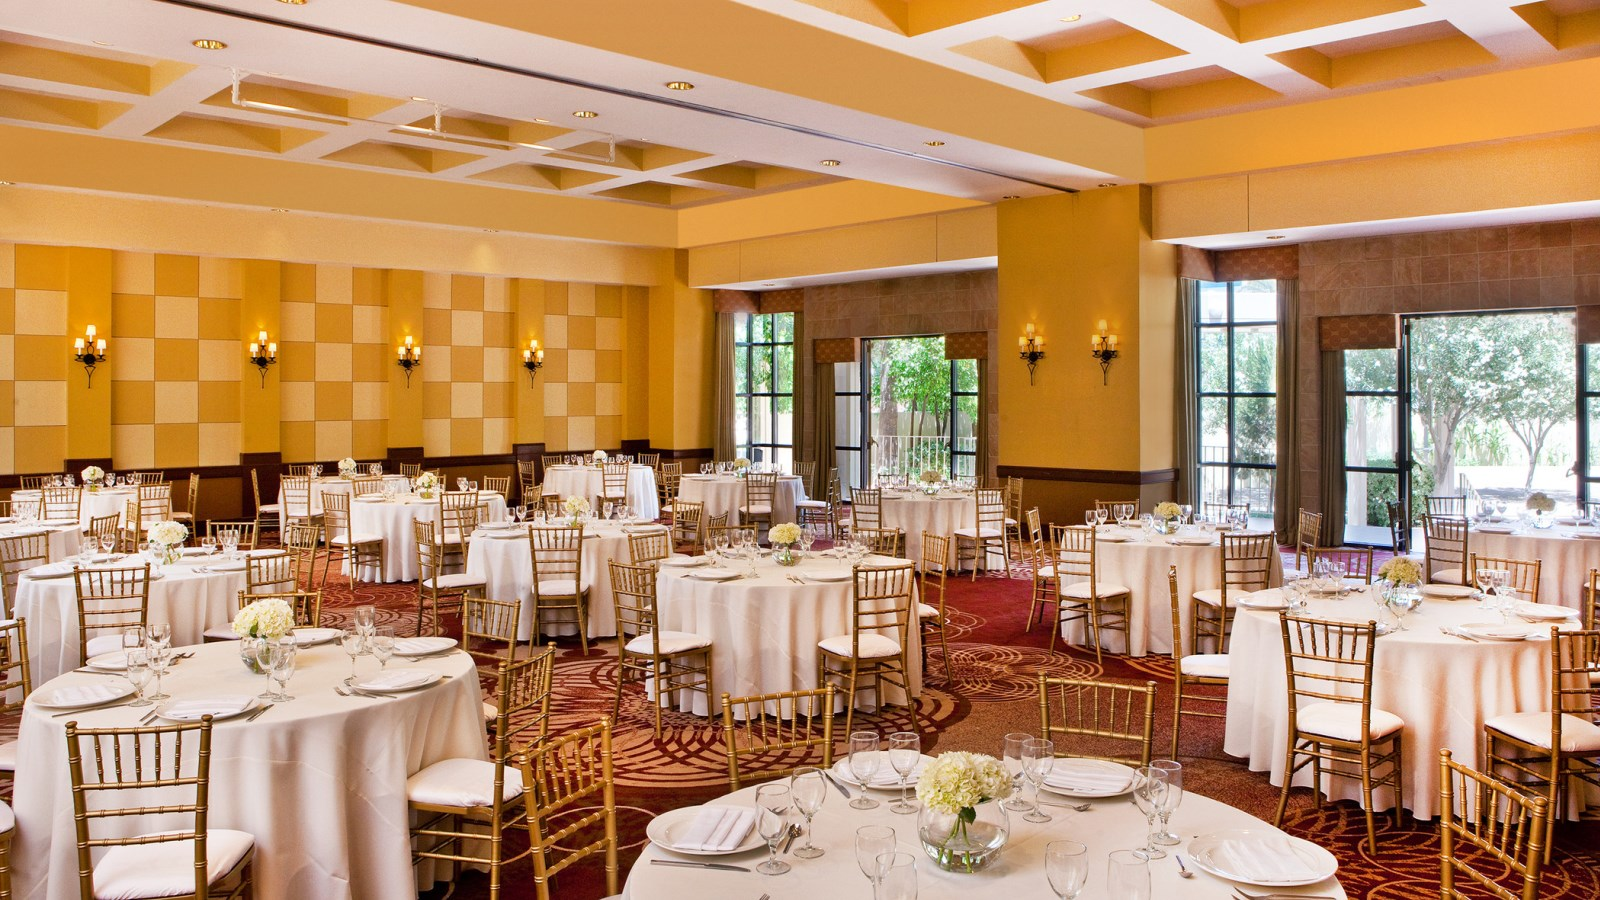 Wedding venues in phoenix sheraton crescent hotel sheraton crescent hotel wedding venues junglespirit Choice Image